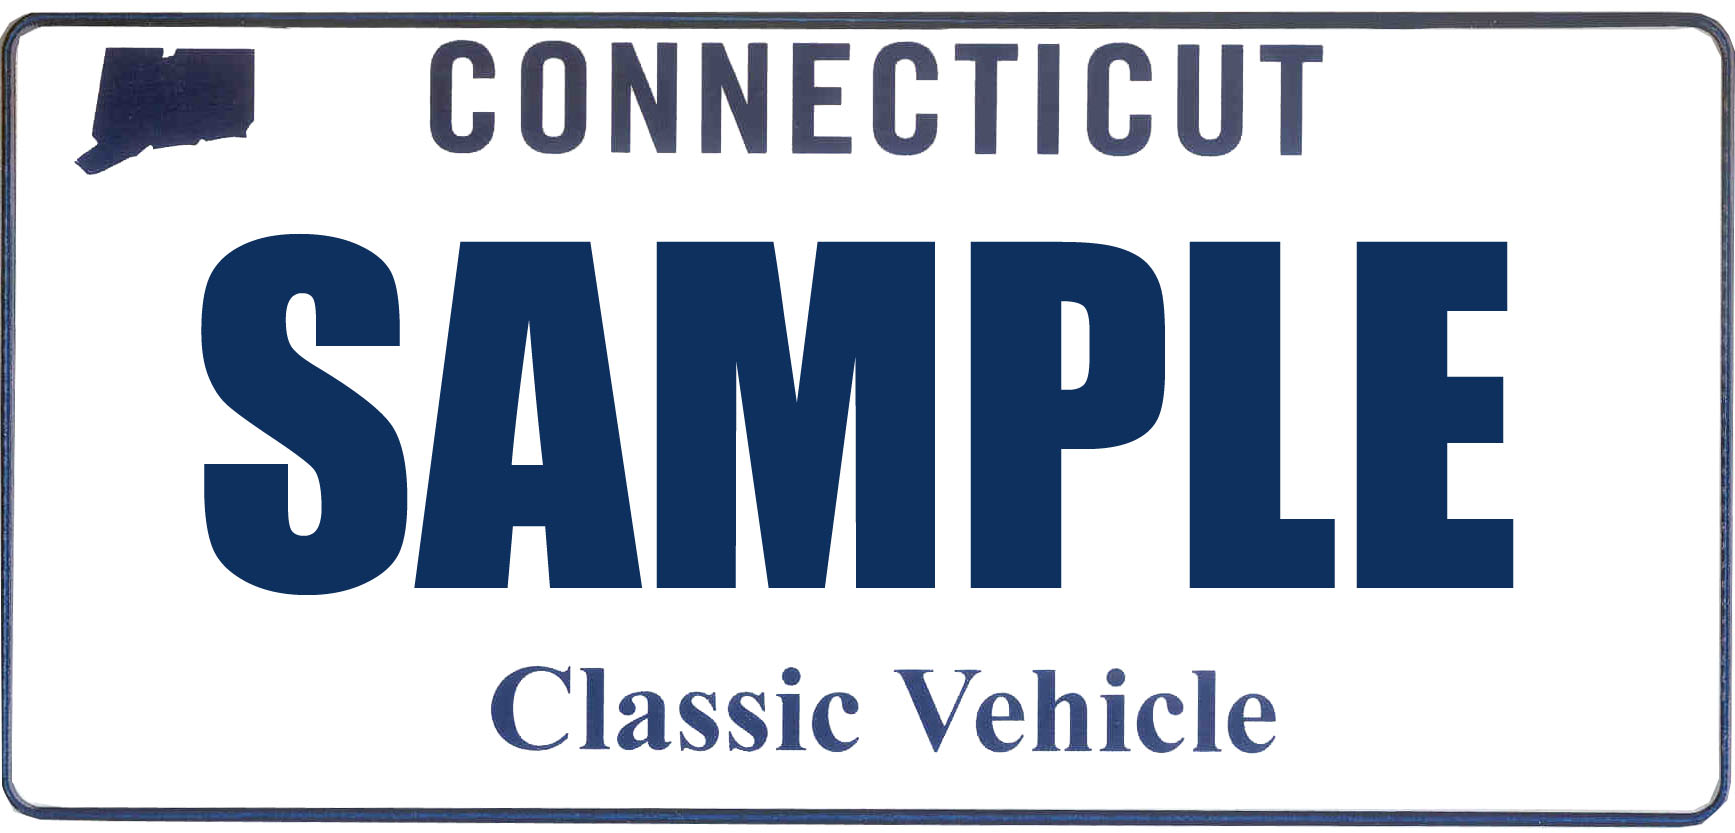 Classic Vehicle plate design